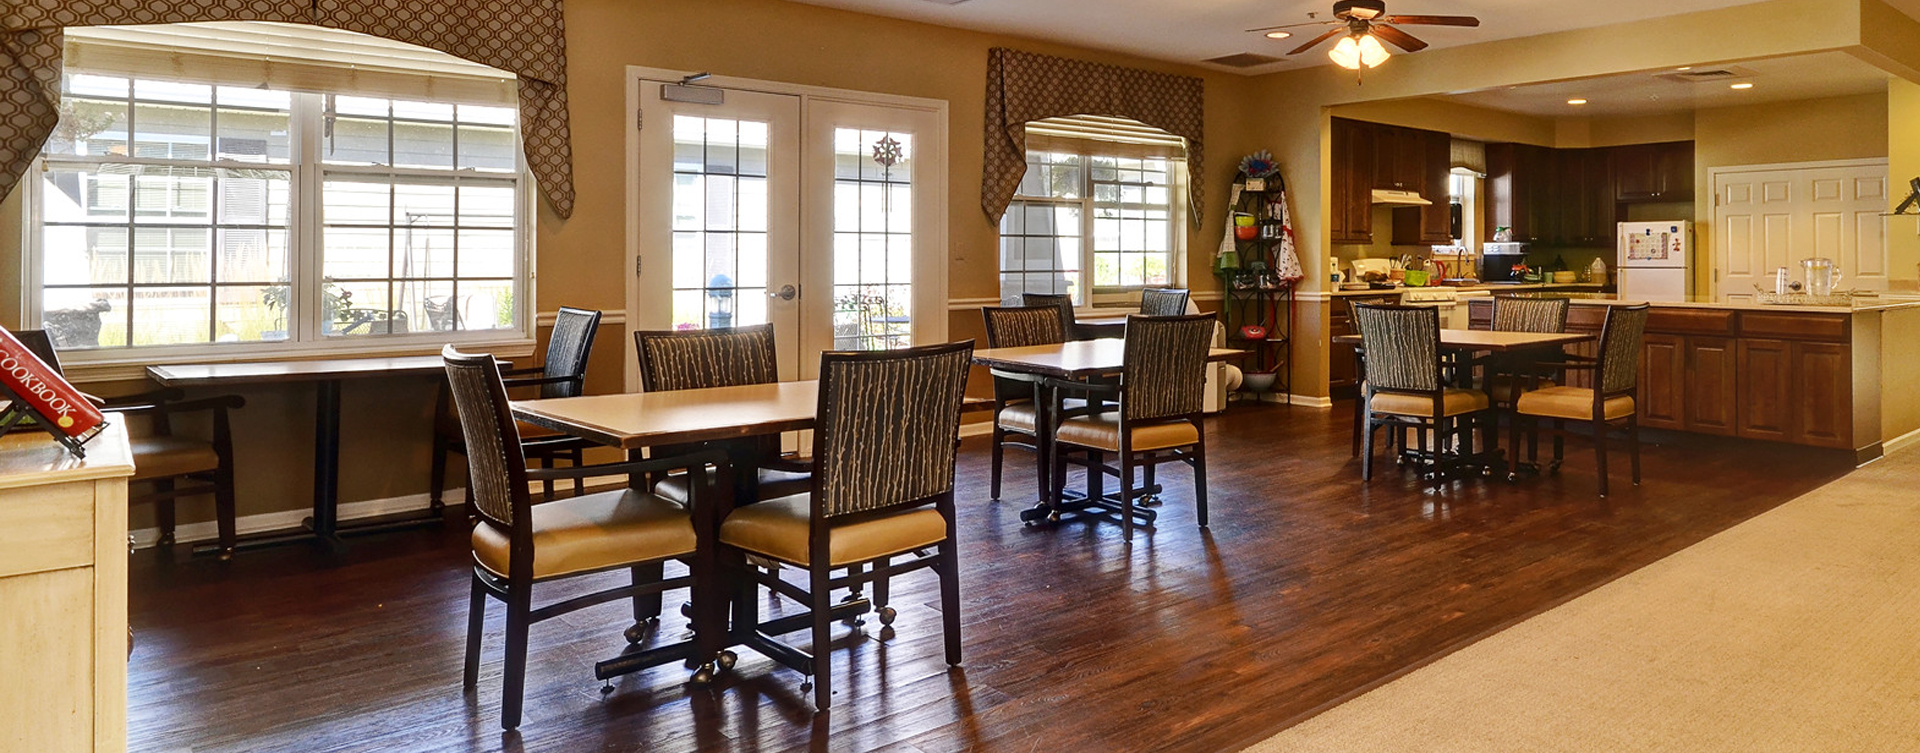 Mary B's country kitchen evokes a sense of home and reconnects residents to past life skills at Bickford of Crystal Lake